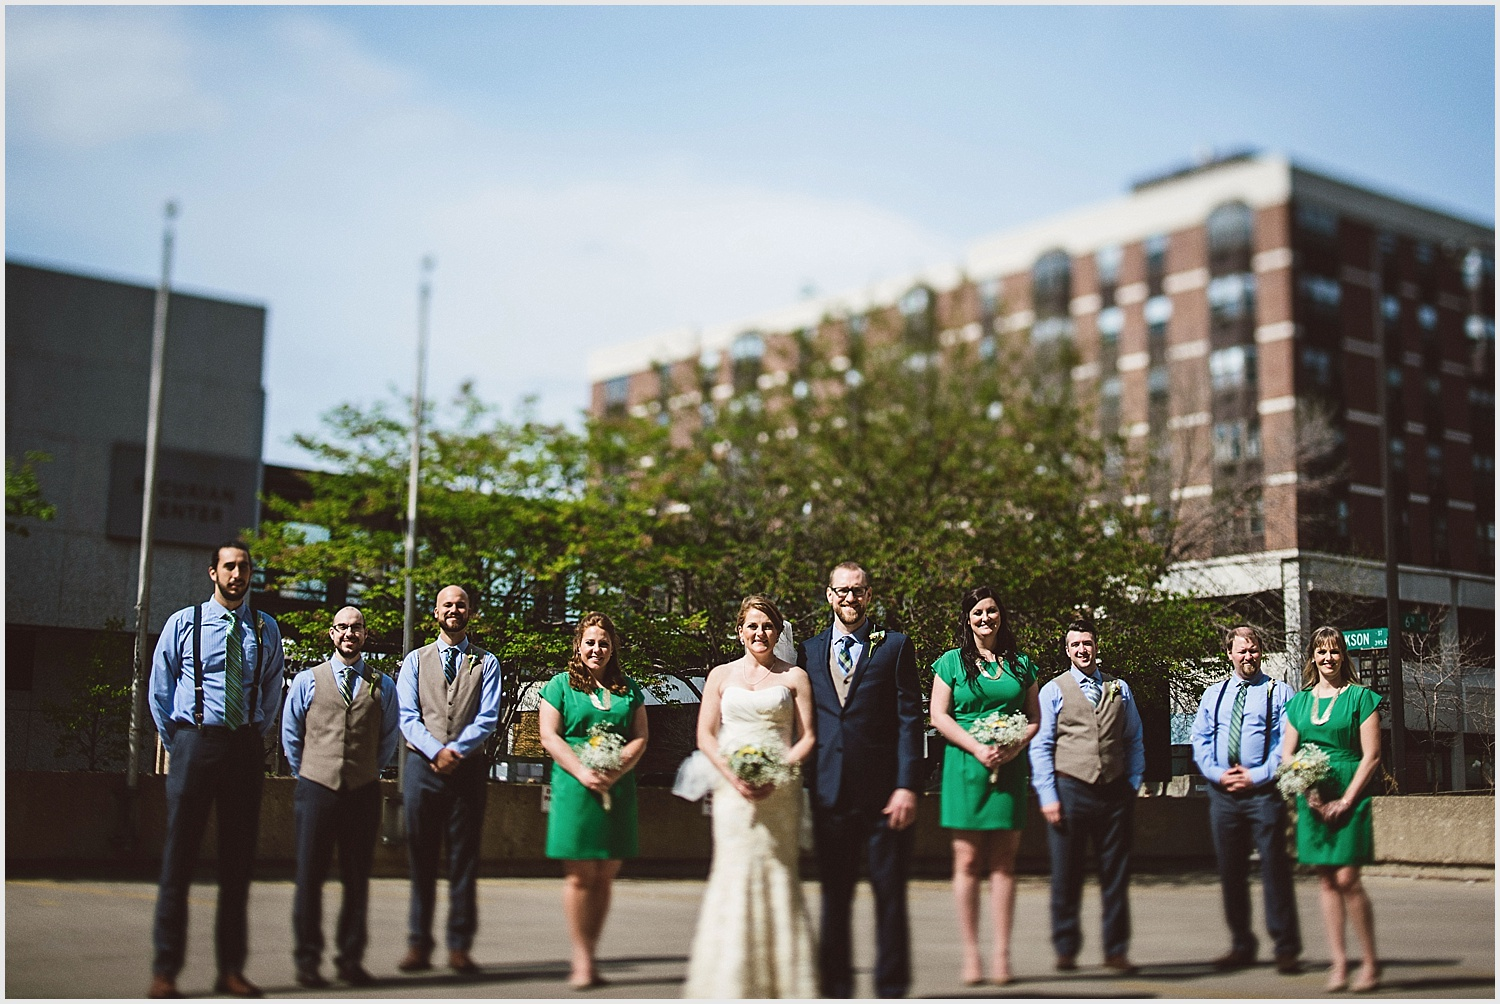 stpaul_wedding_lucas_botz_photography_013.jpg